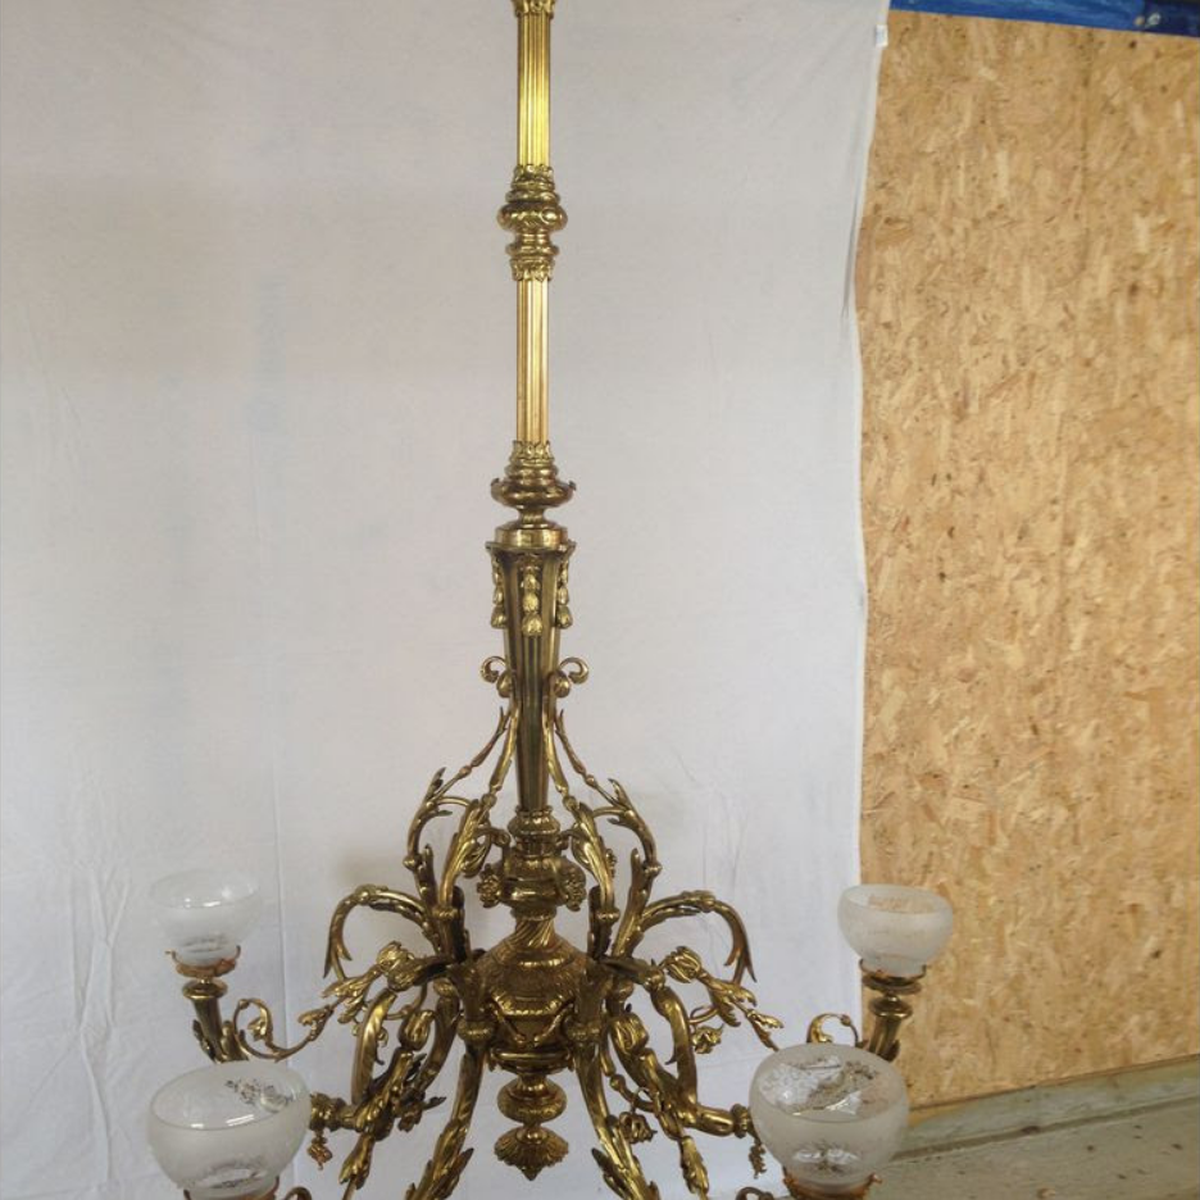 Curlew secondhand marquees chandeliers large antique ormolu large antique chandelier aloadofball Gallery